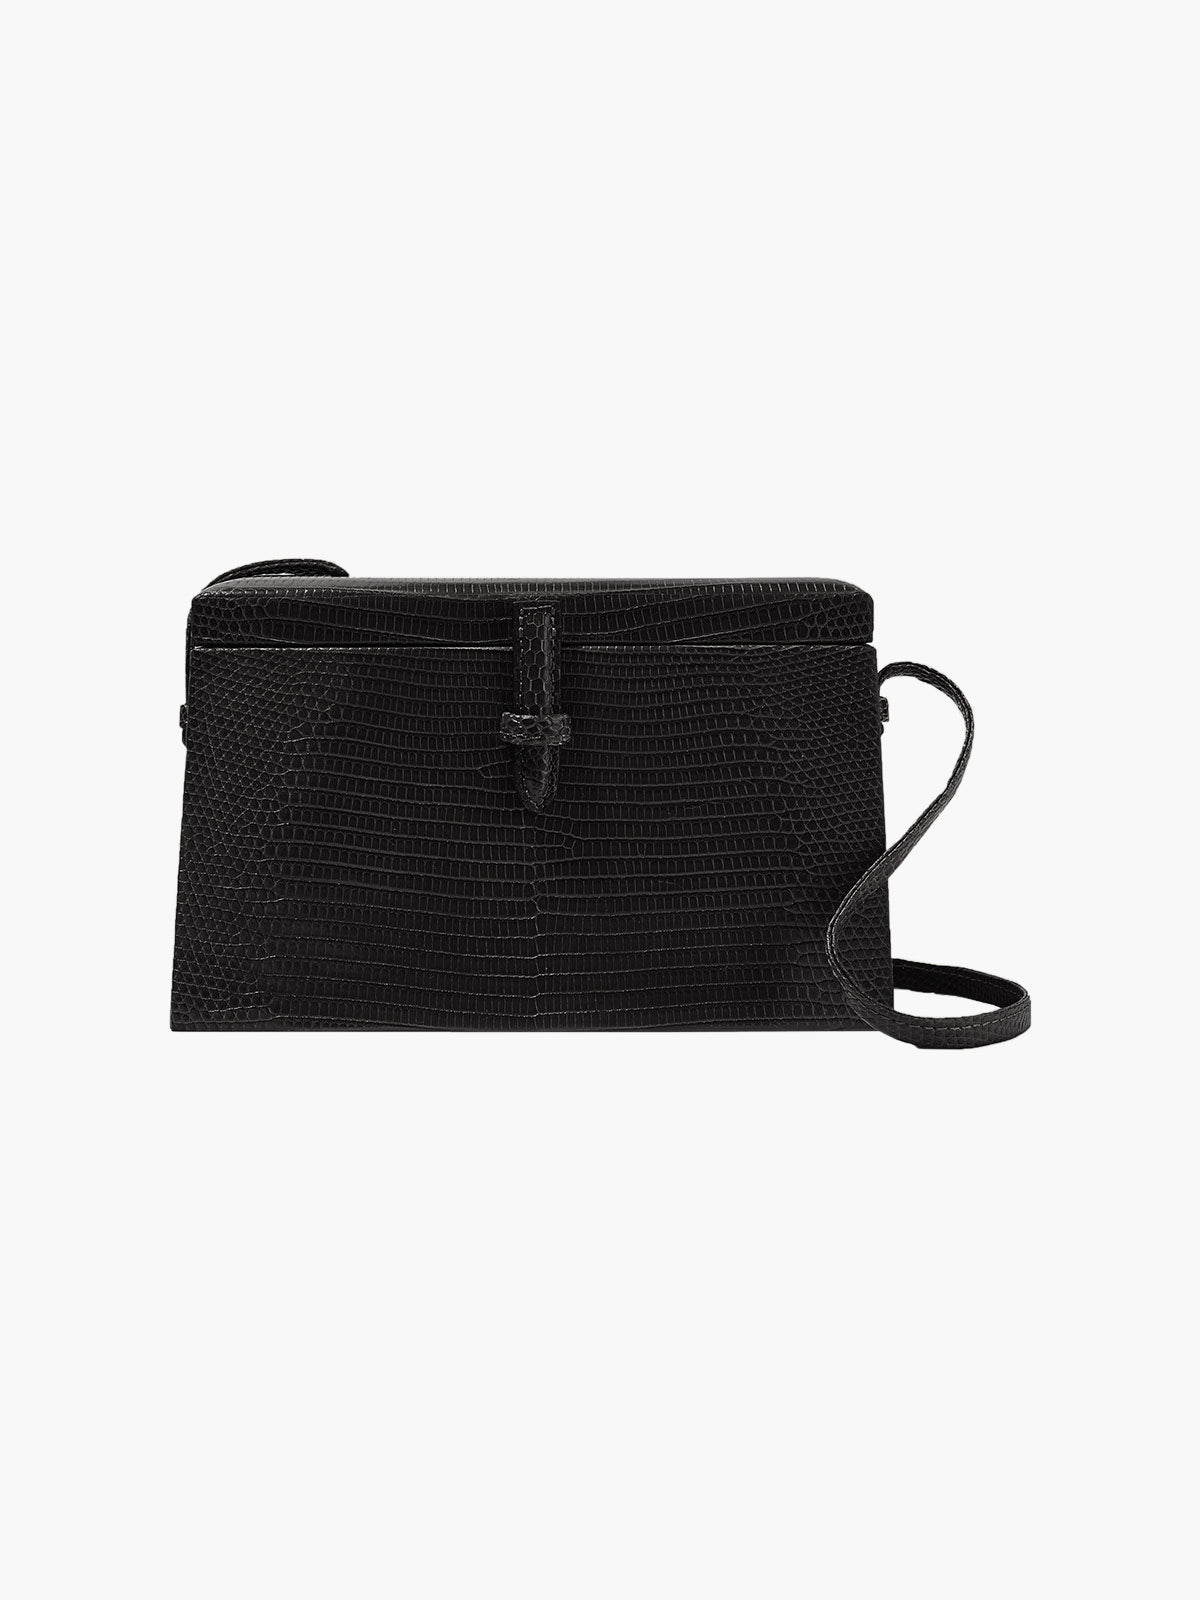 Square Trunk Bag | Black Lizard Square Trunk Bag | Black Lizard